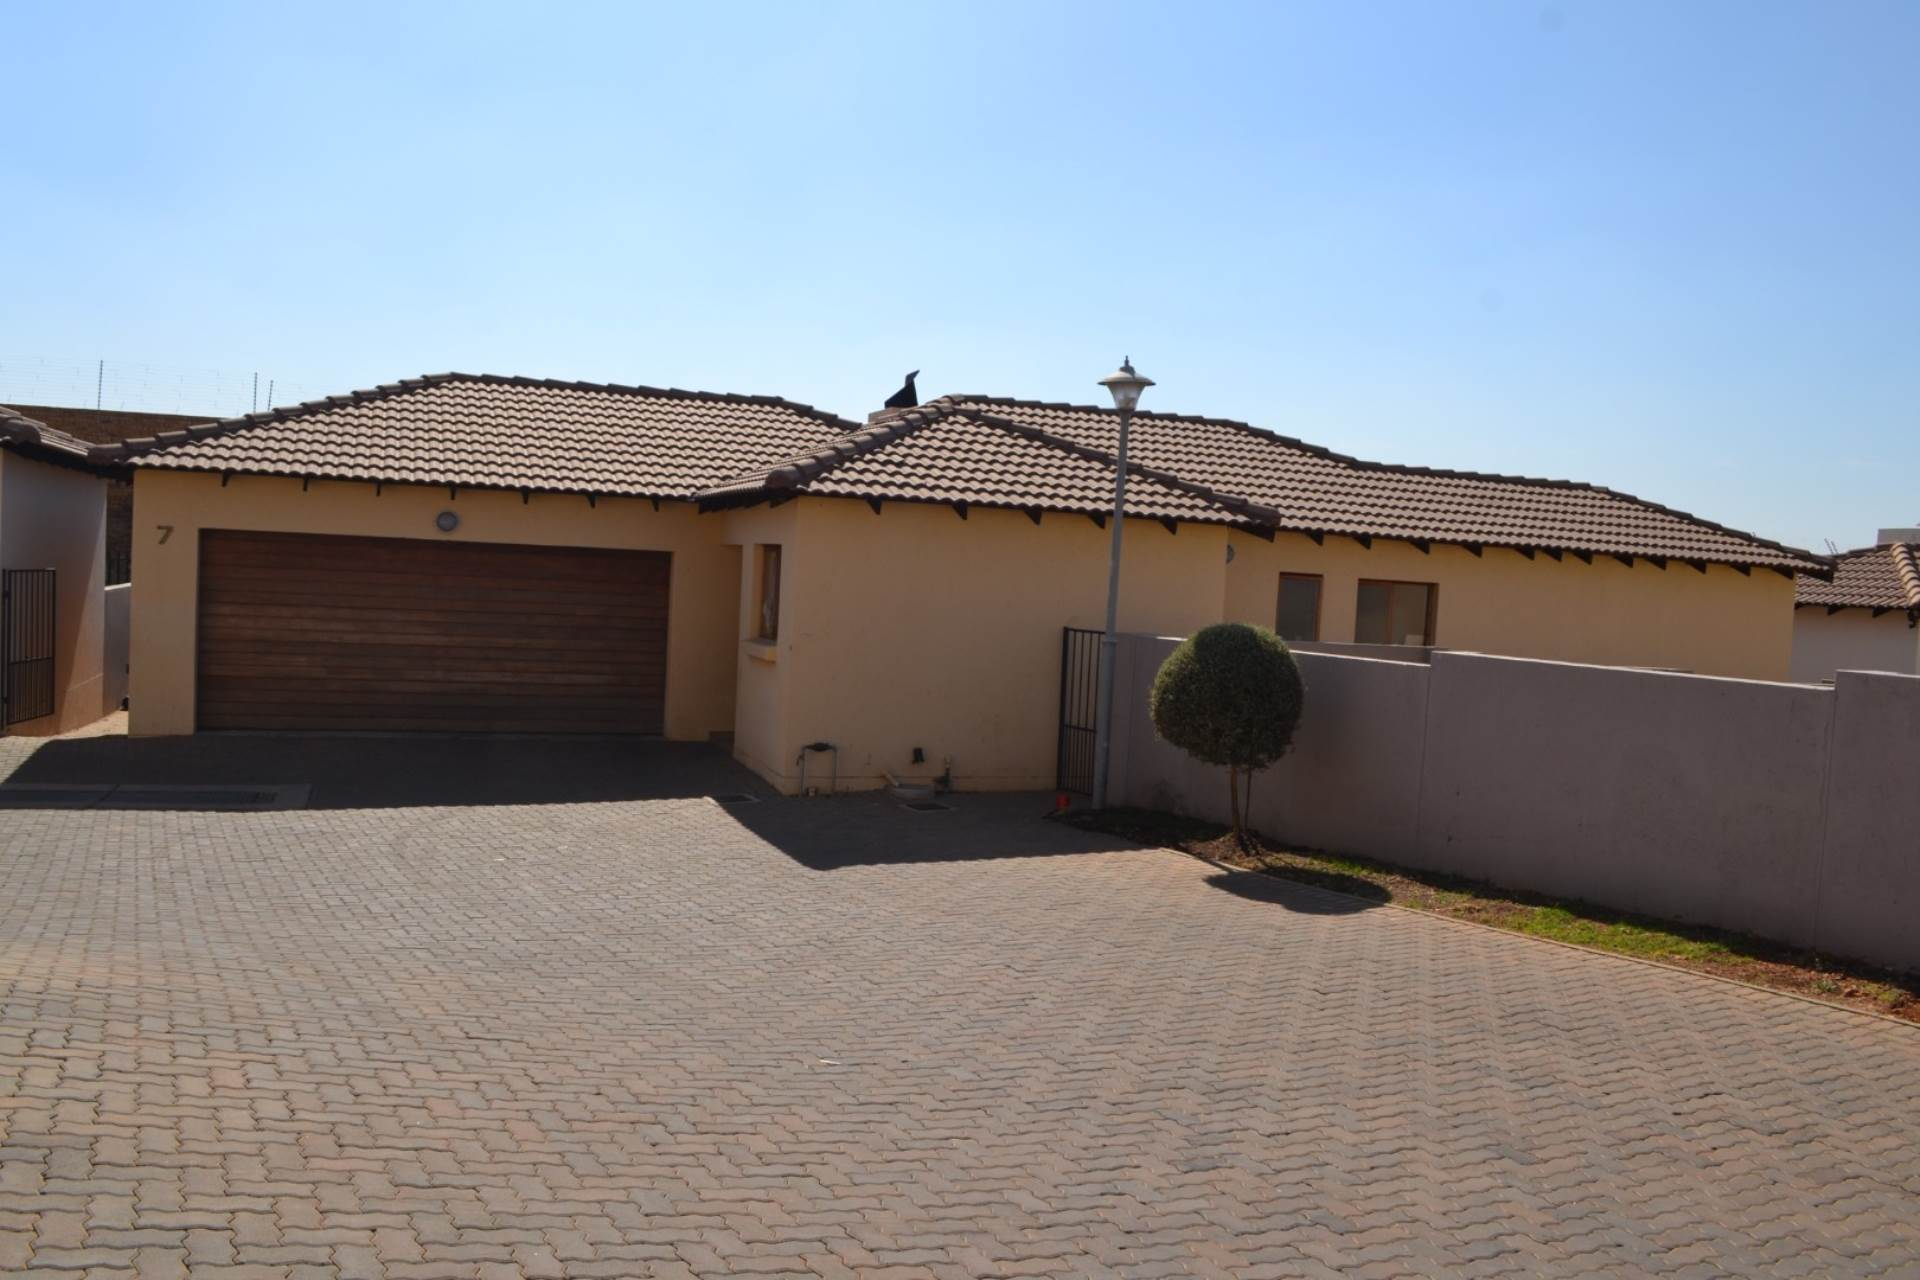 3 BedroomTownhouse To Rent In Thatchfield